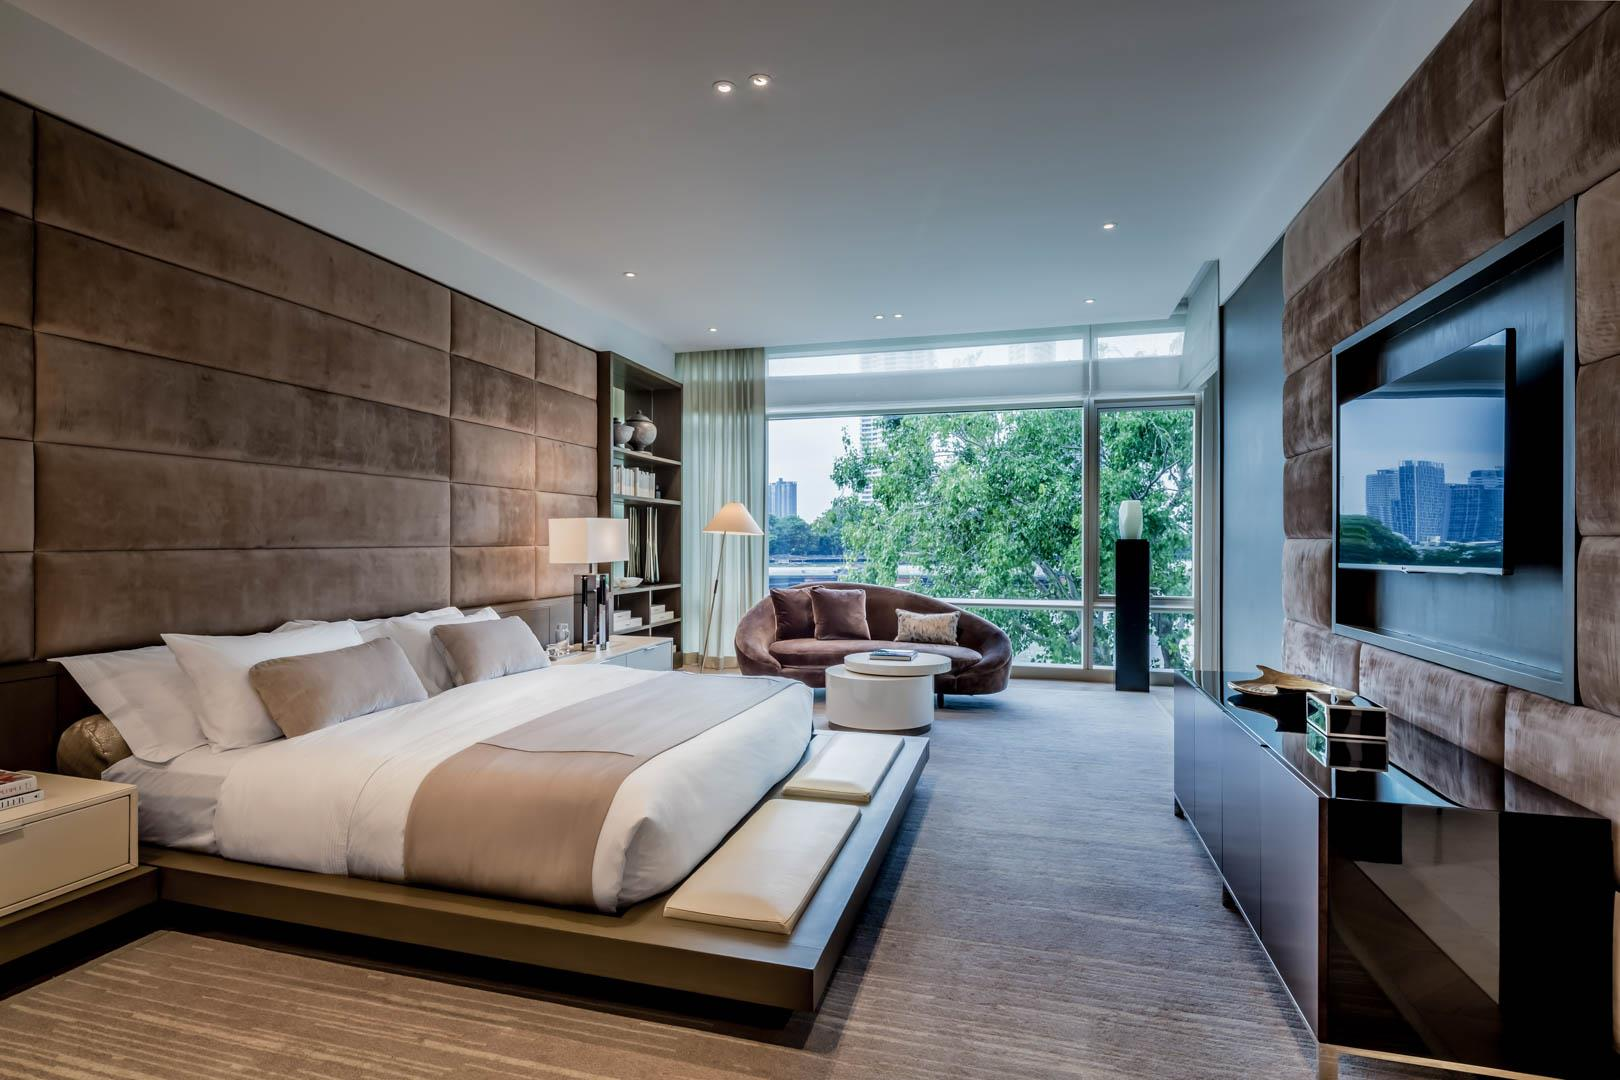 Four Seasons Private Residences Bangkok 4 Bedroom